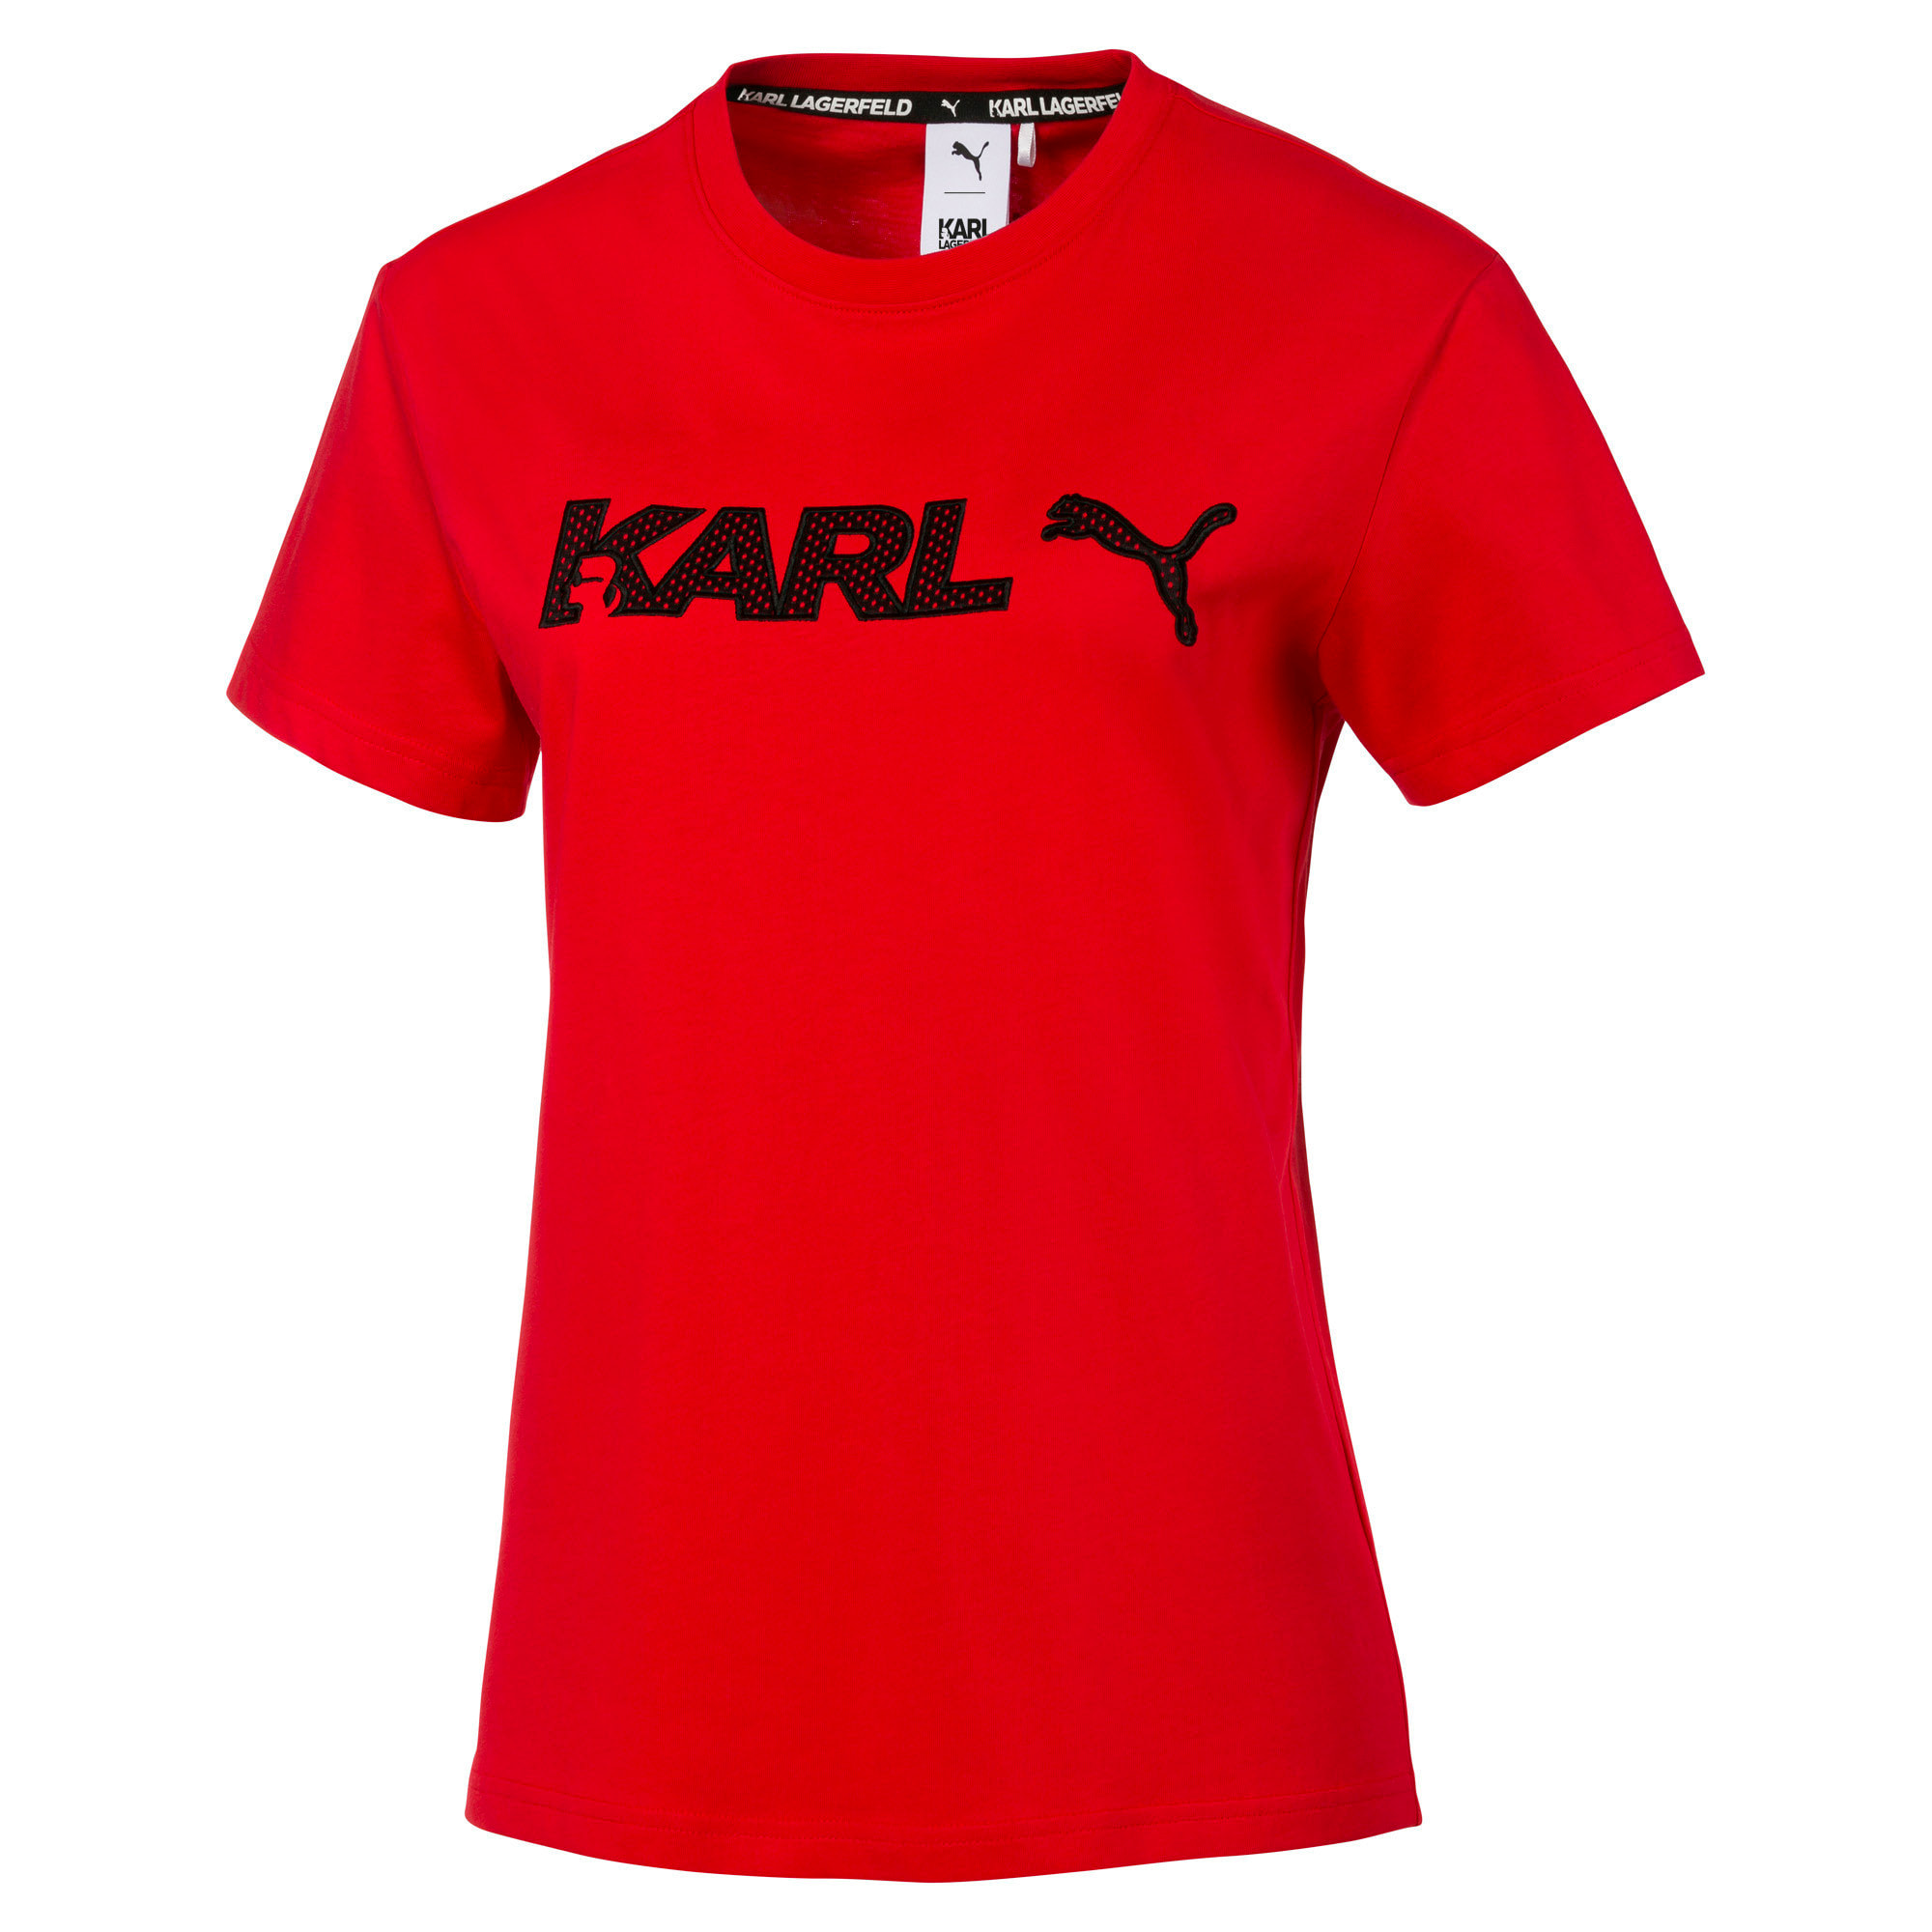 Thumbnail 1 of PUMA x KARL LAGERFELD Women's Tee, High Risk Red, medium